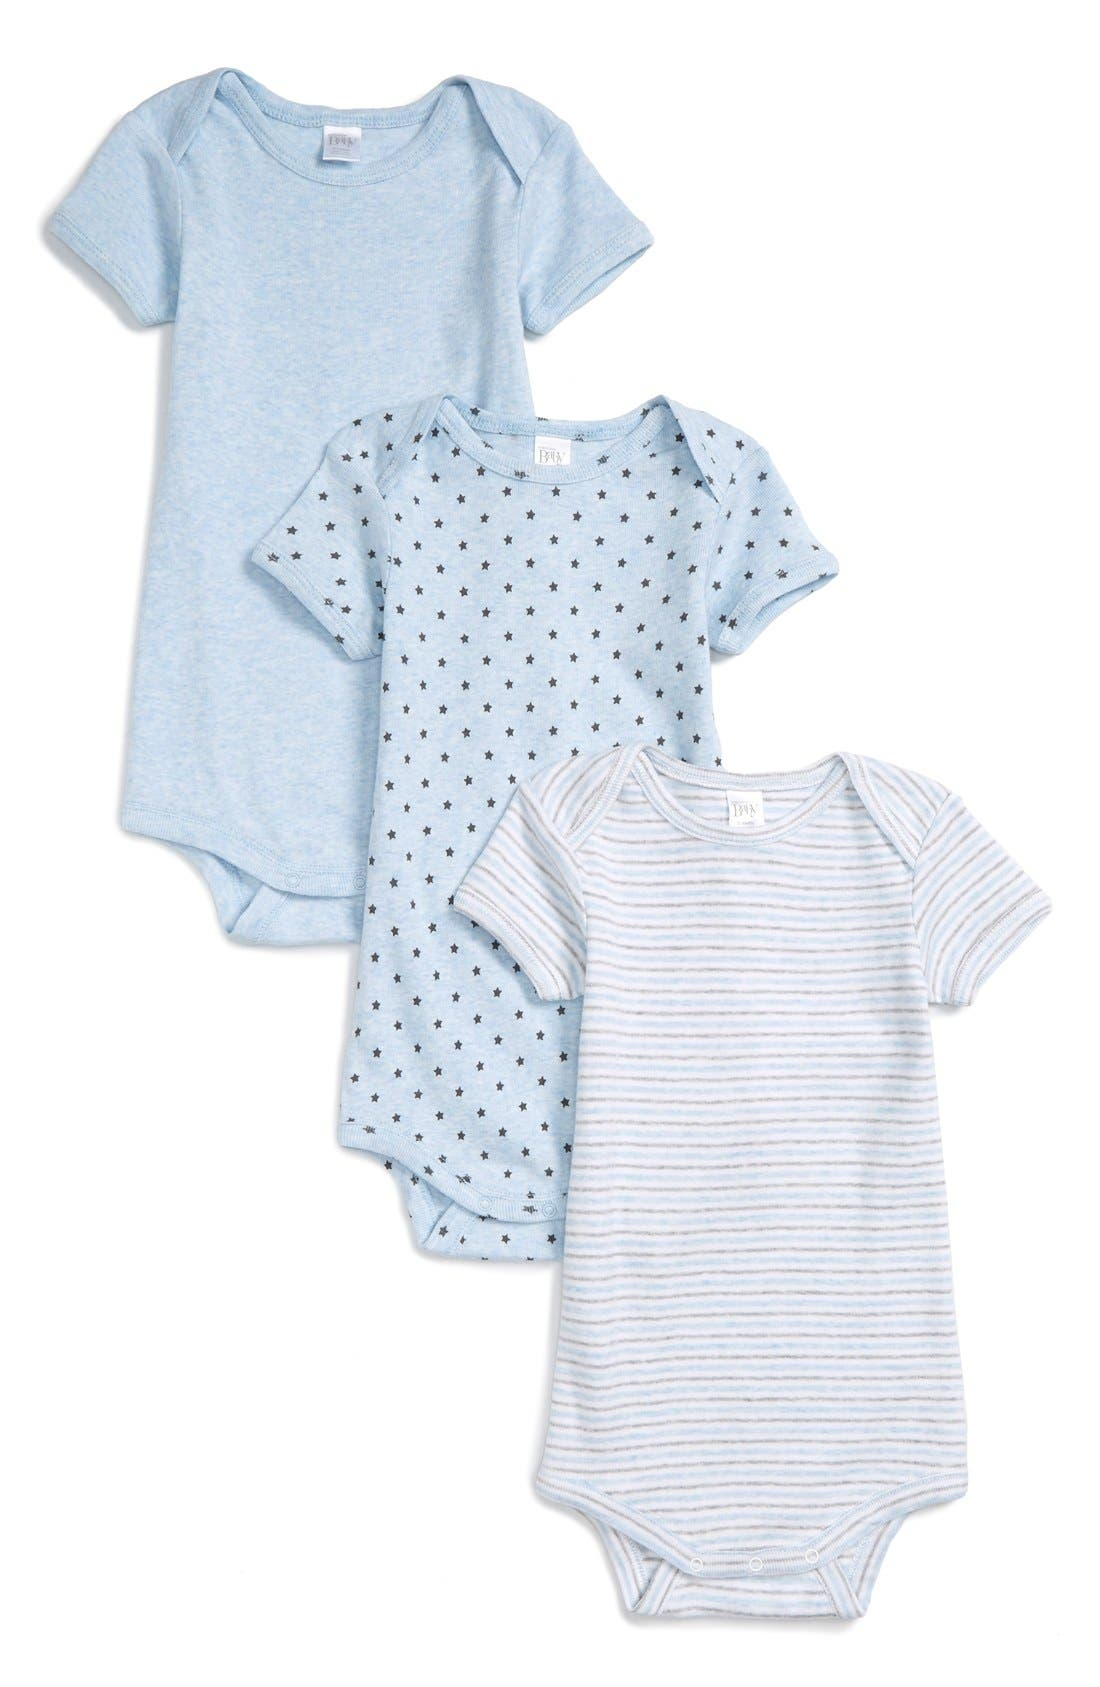 NORDSTROM BABY, 3-Pack Bodysuits, Main thumbnail 1, color, BLUE PRECIOUS PACK